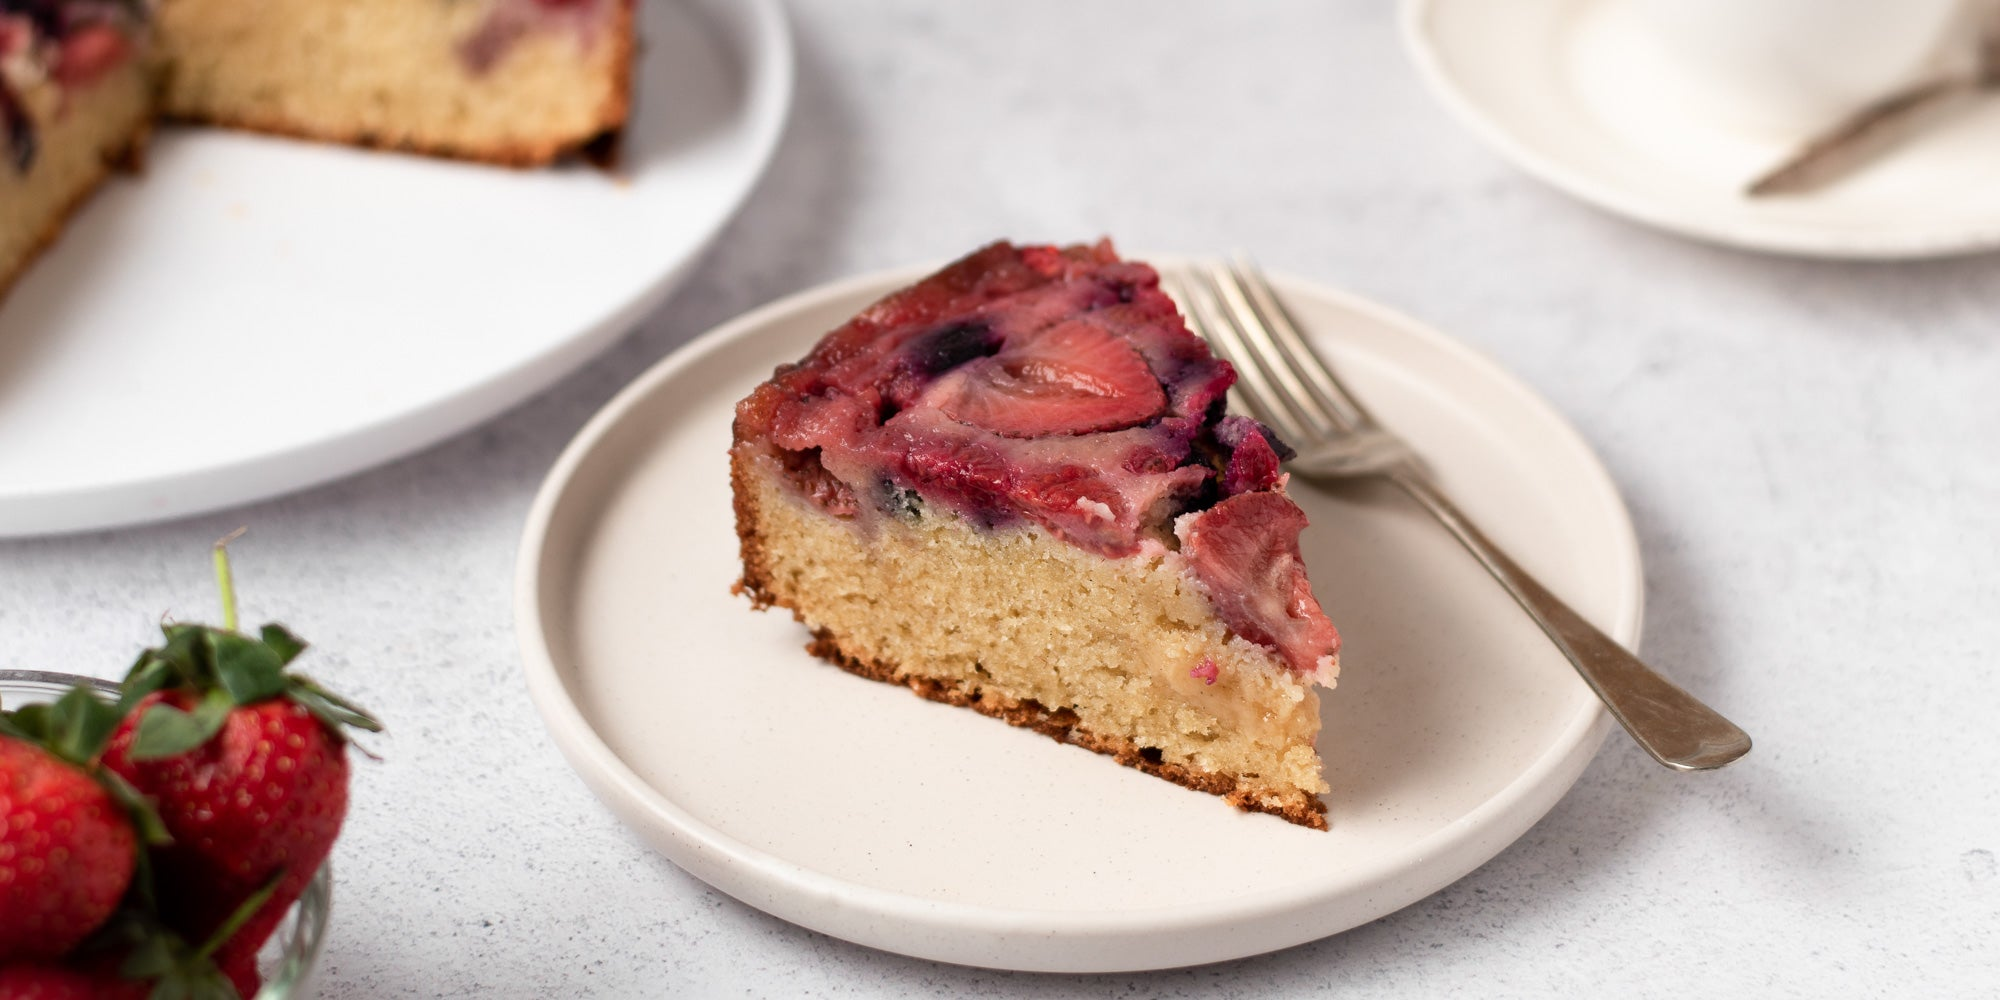 slice of upside down berry pudding on a plate